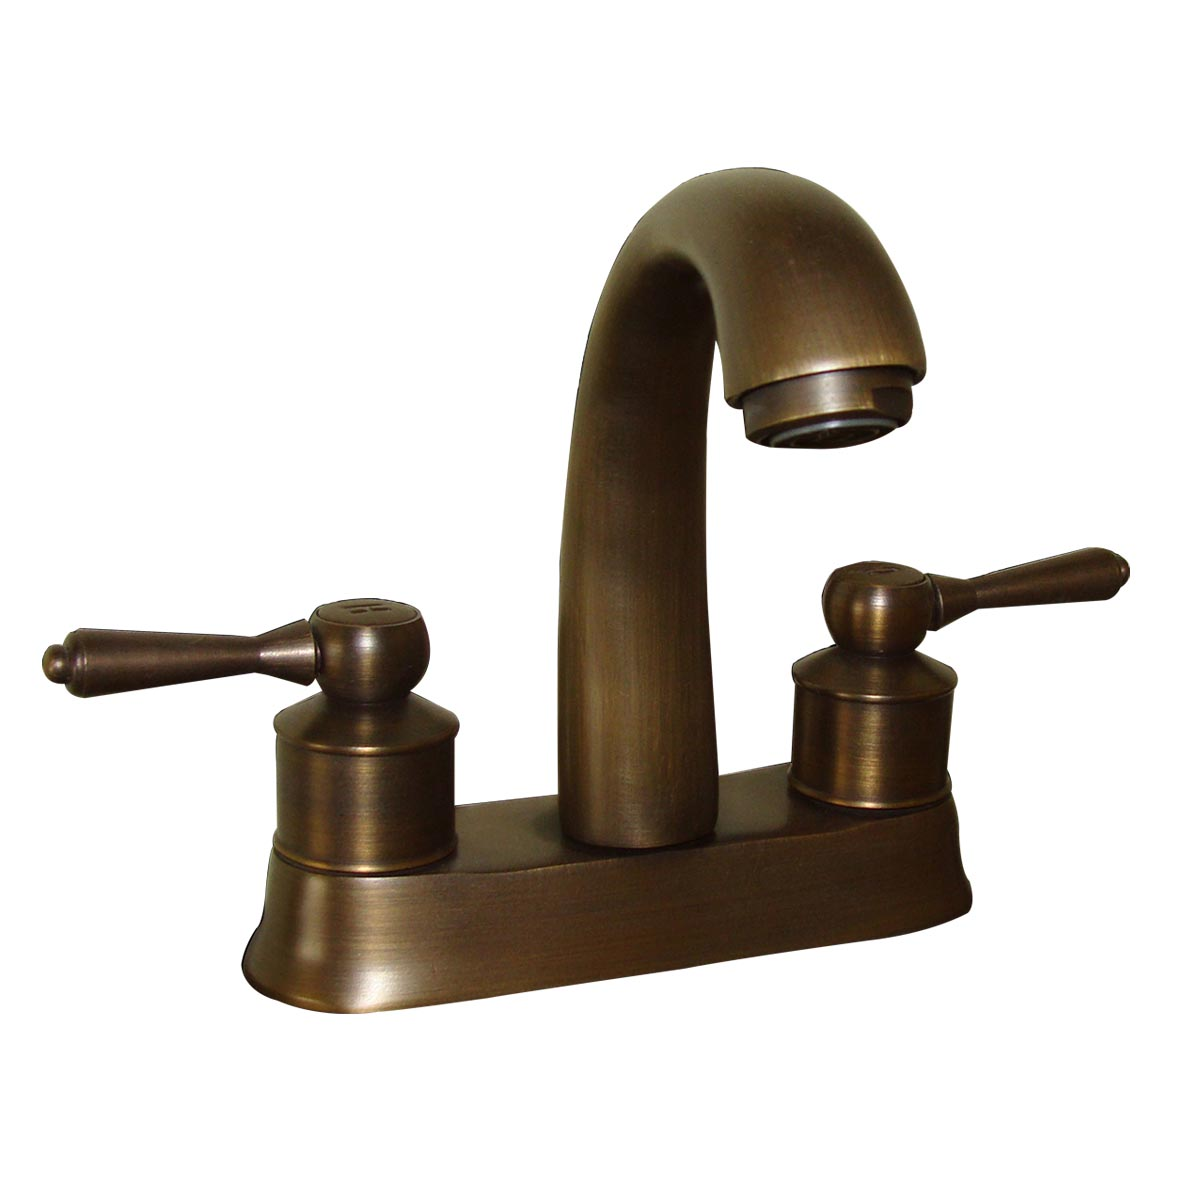 Faucet antique brass classic bathroom sink centerset 2 lever for Bathroom sink faucets